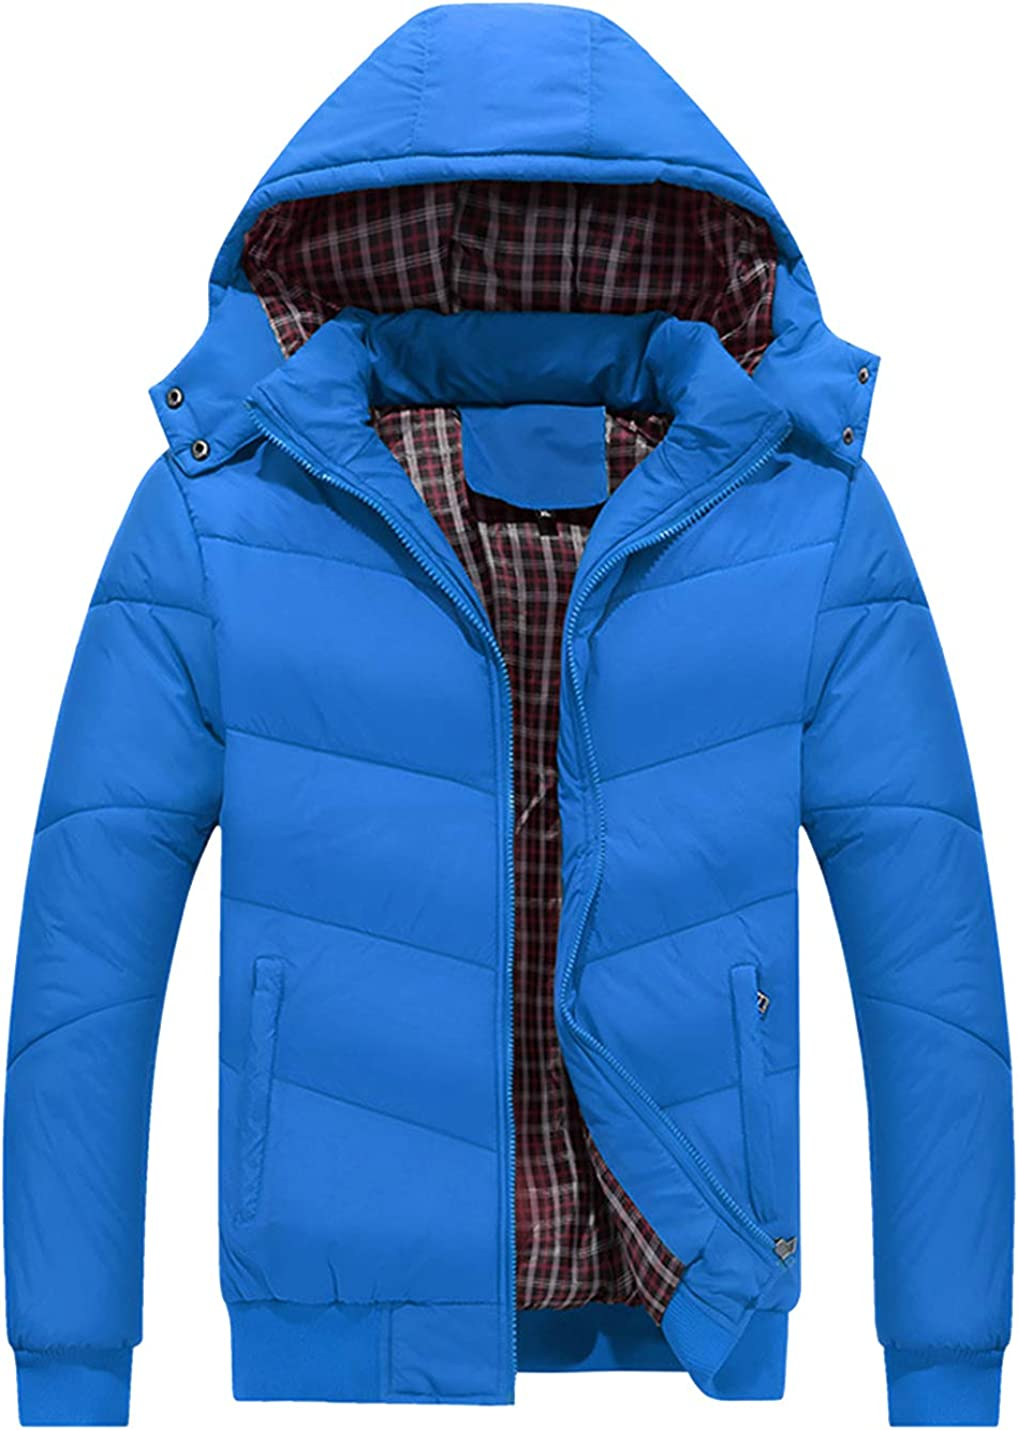 HaoMay Men's Winter Quilted Jacket Removable Hooded Cotton-Padded Coat